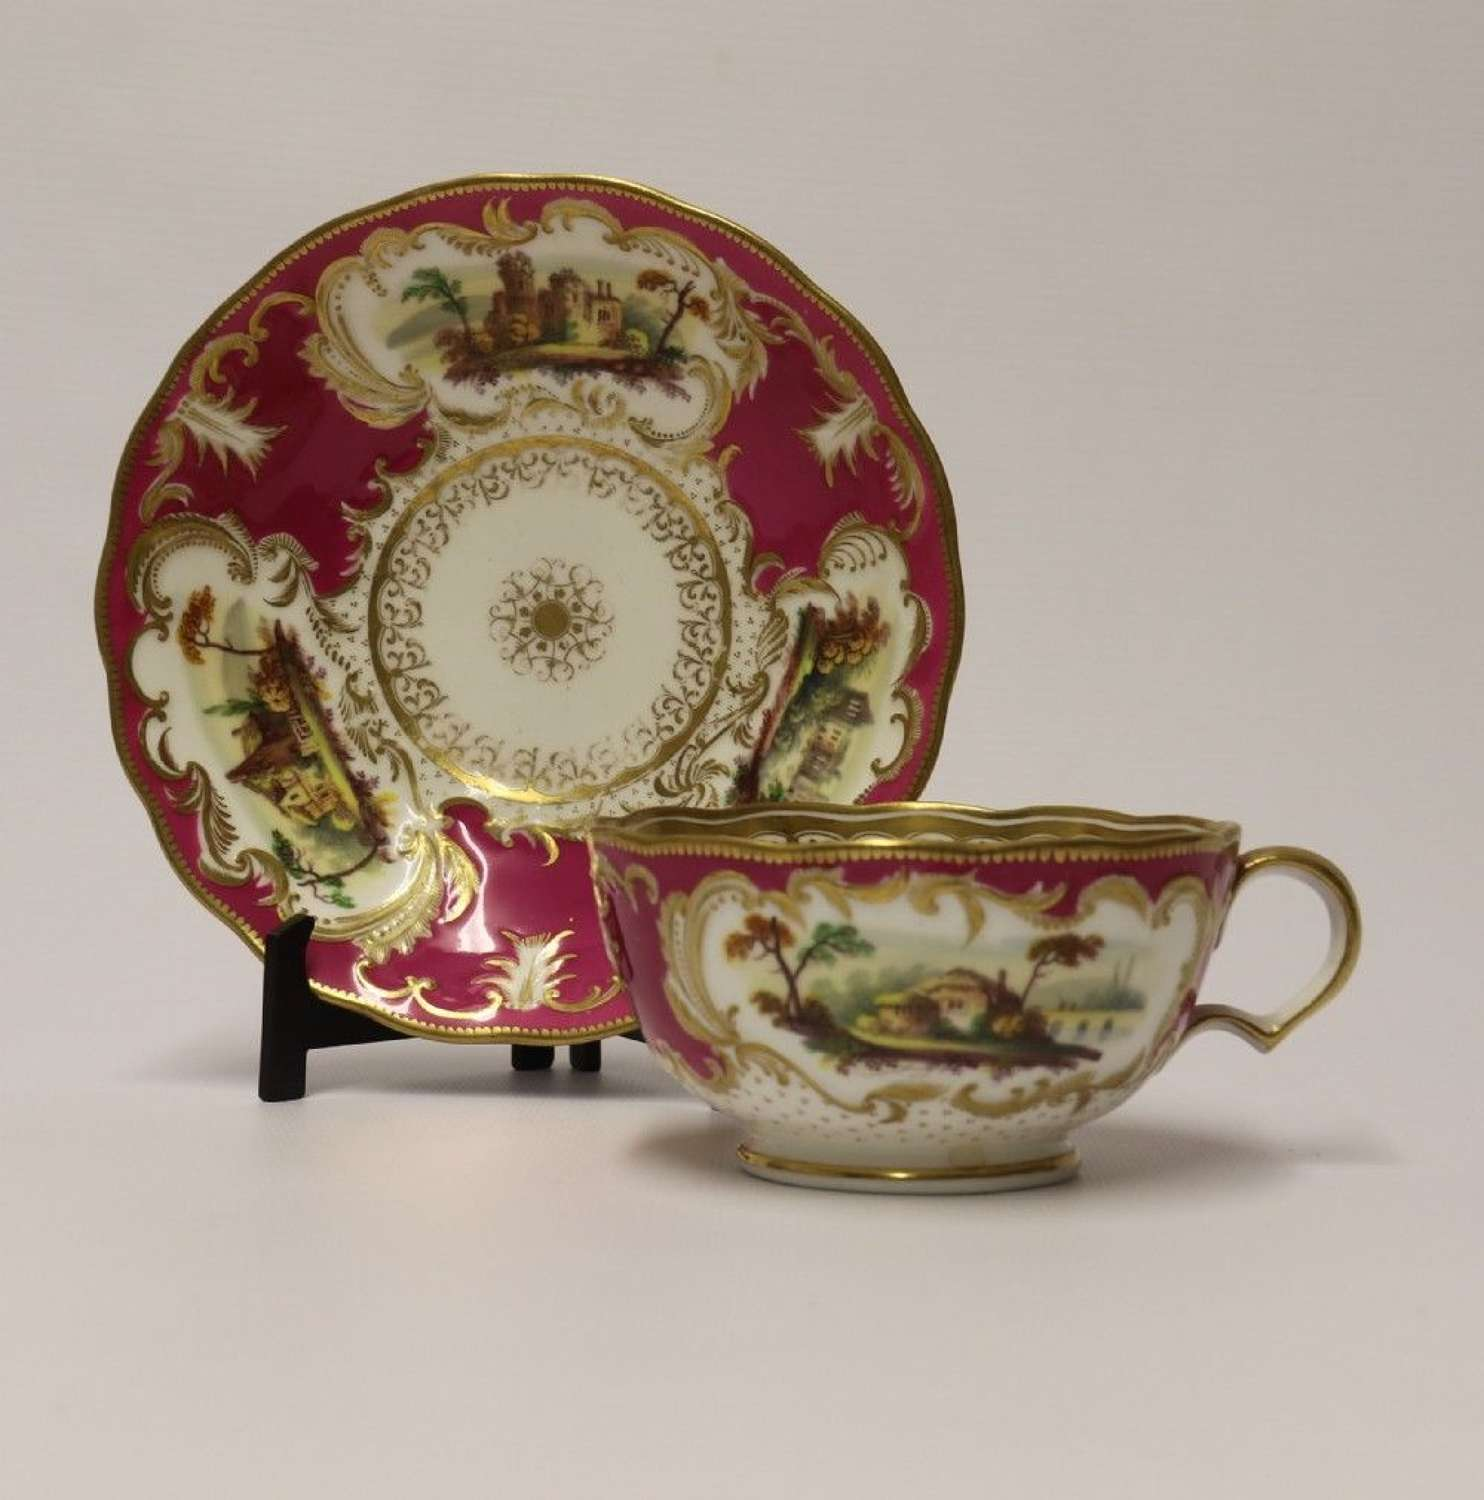 A Rare English Over Sized Early 19th Century Minton Breakfast Cup And Saucer.